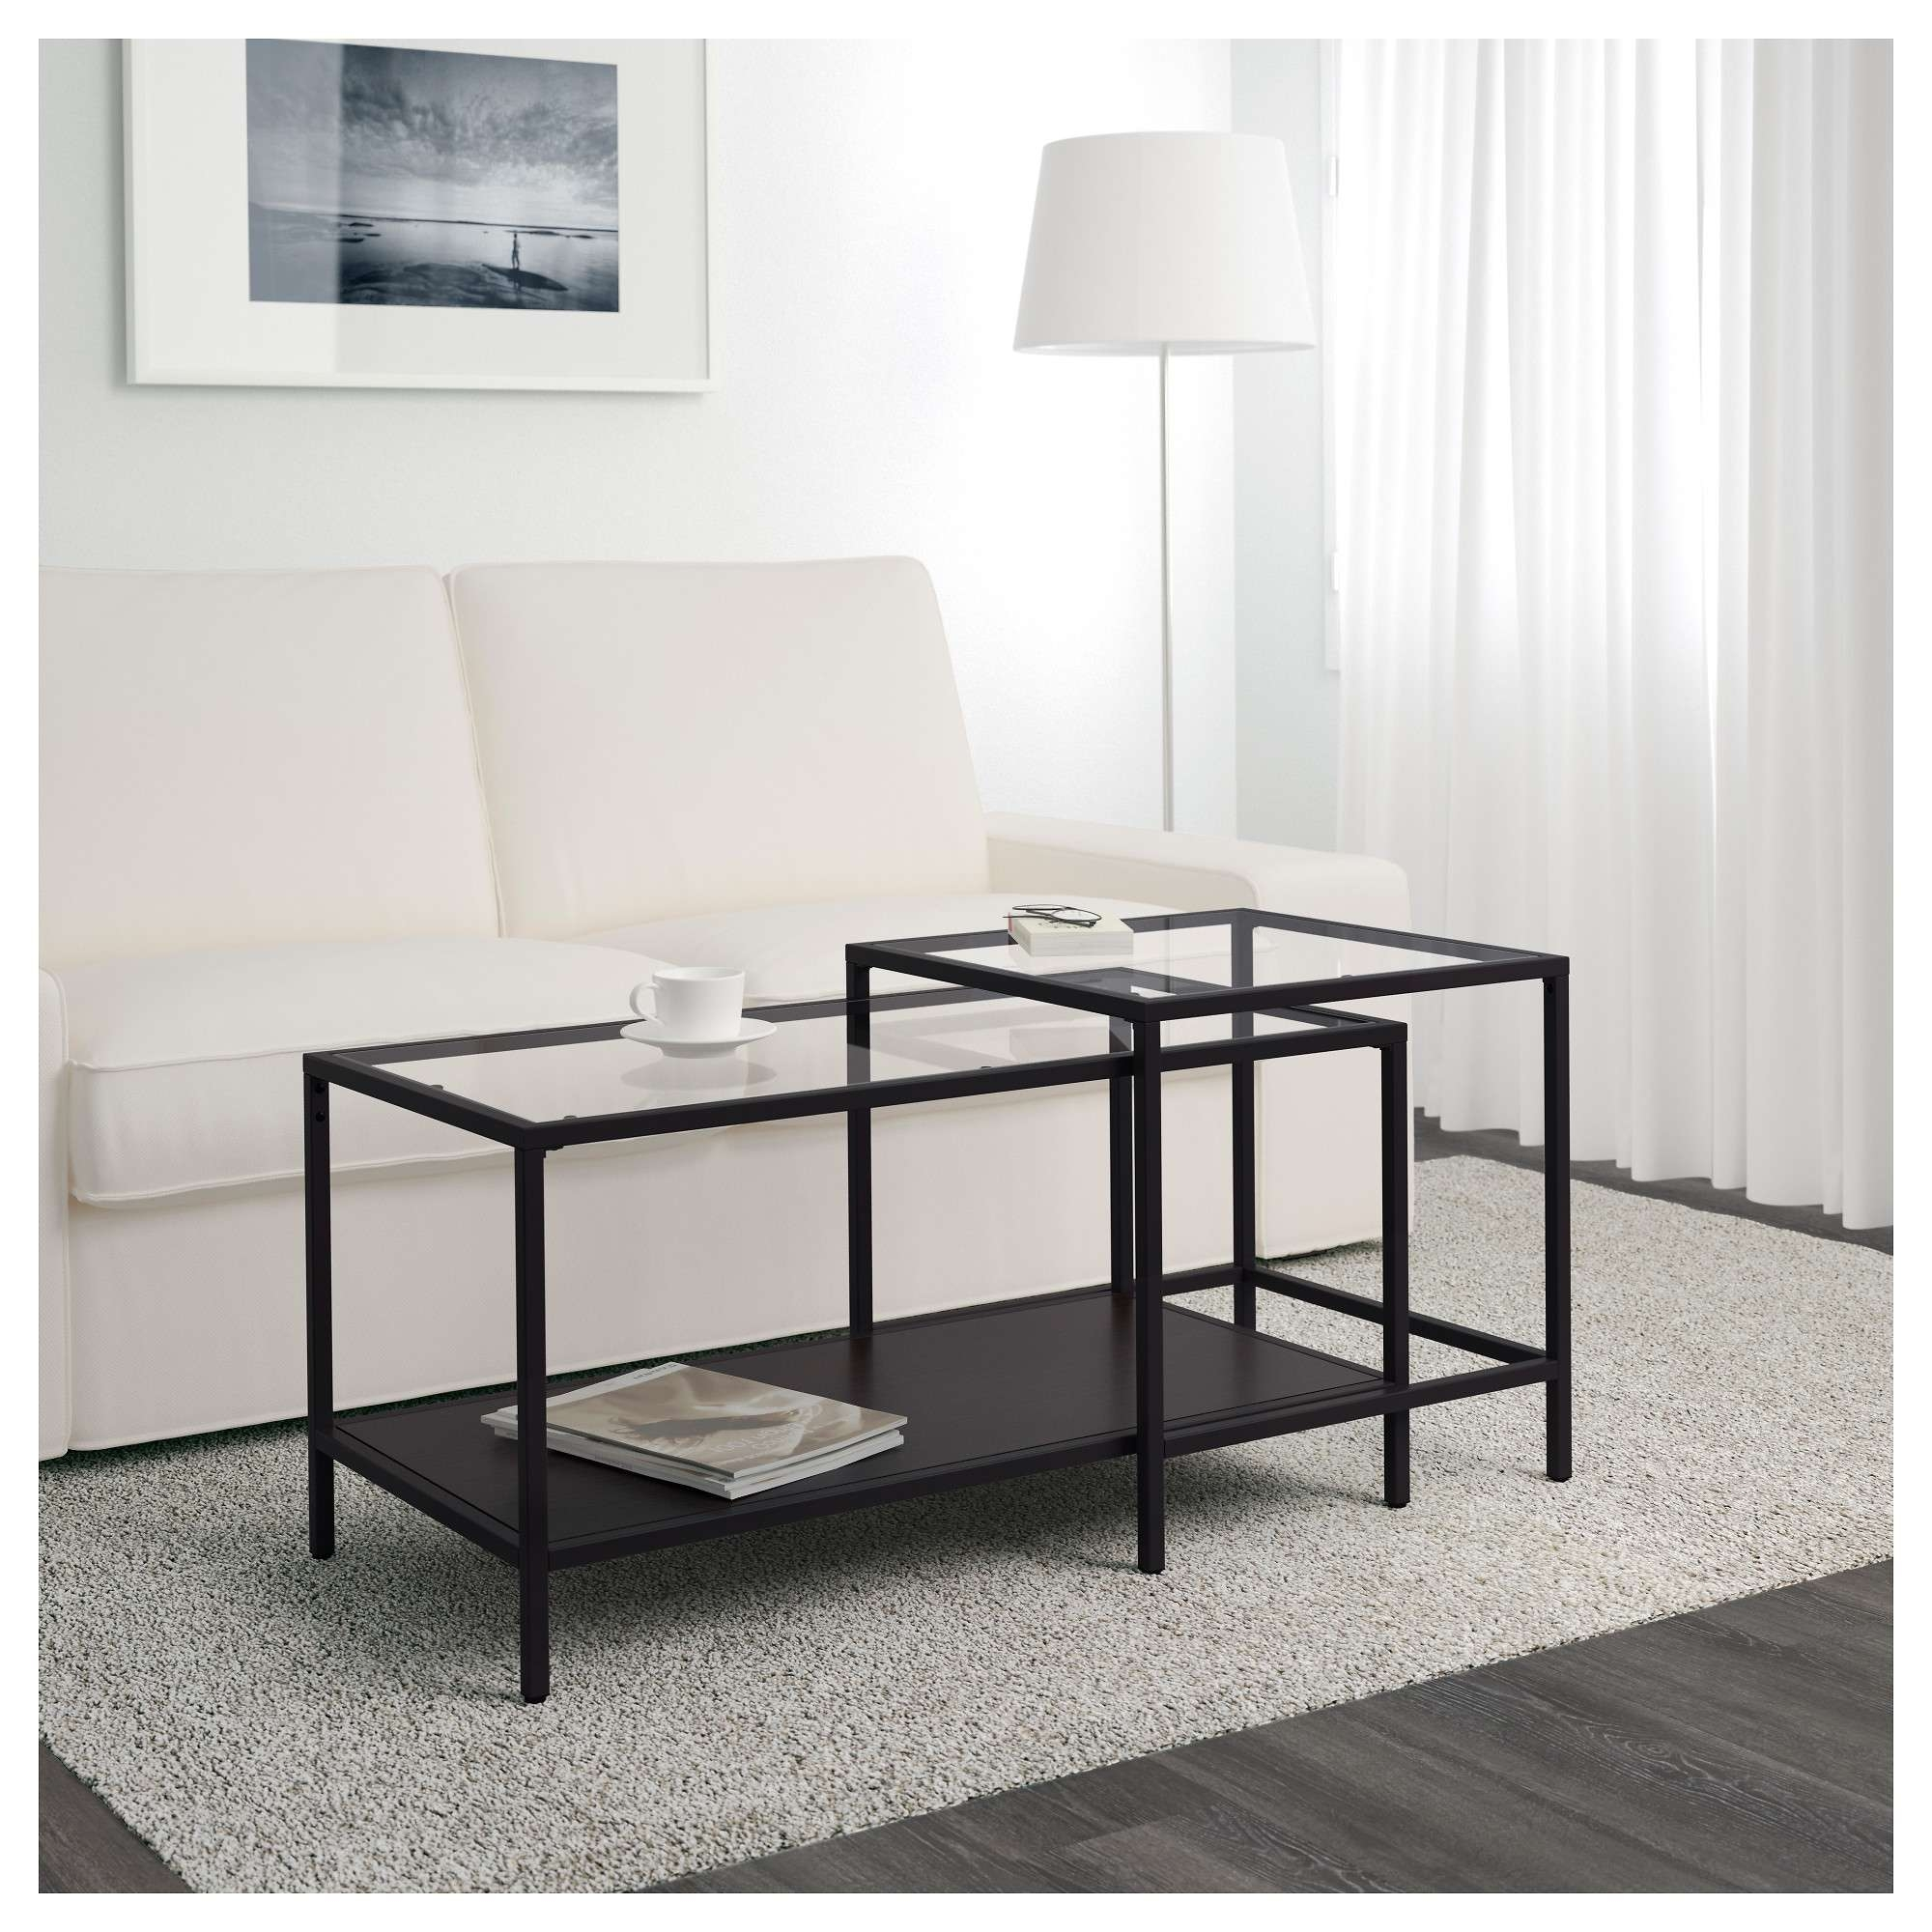 Explore s of Nest Coffee Tables Showing 4 of 20 s